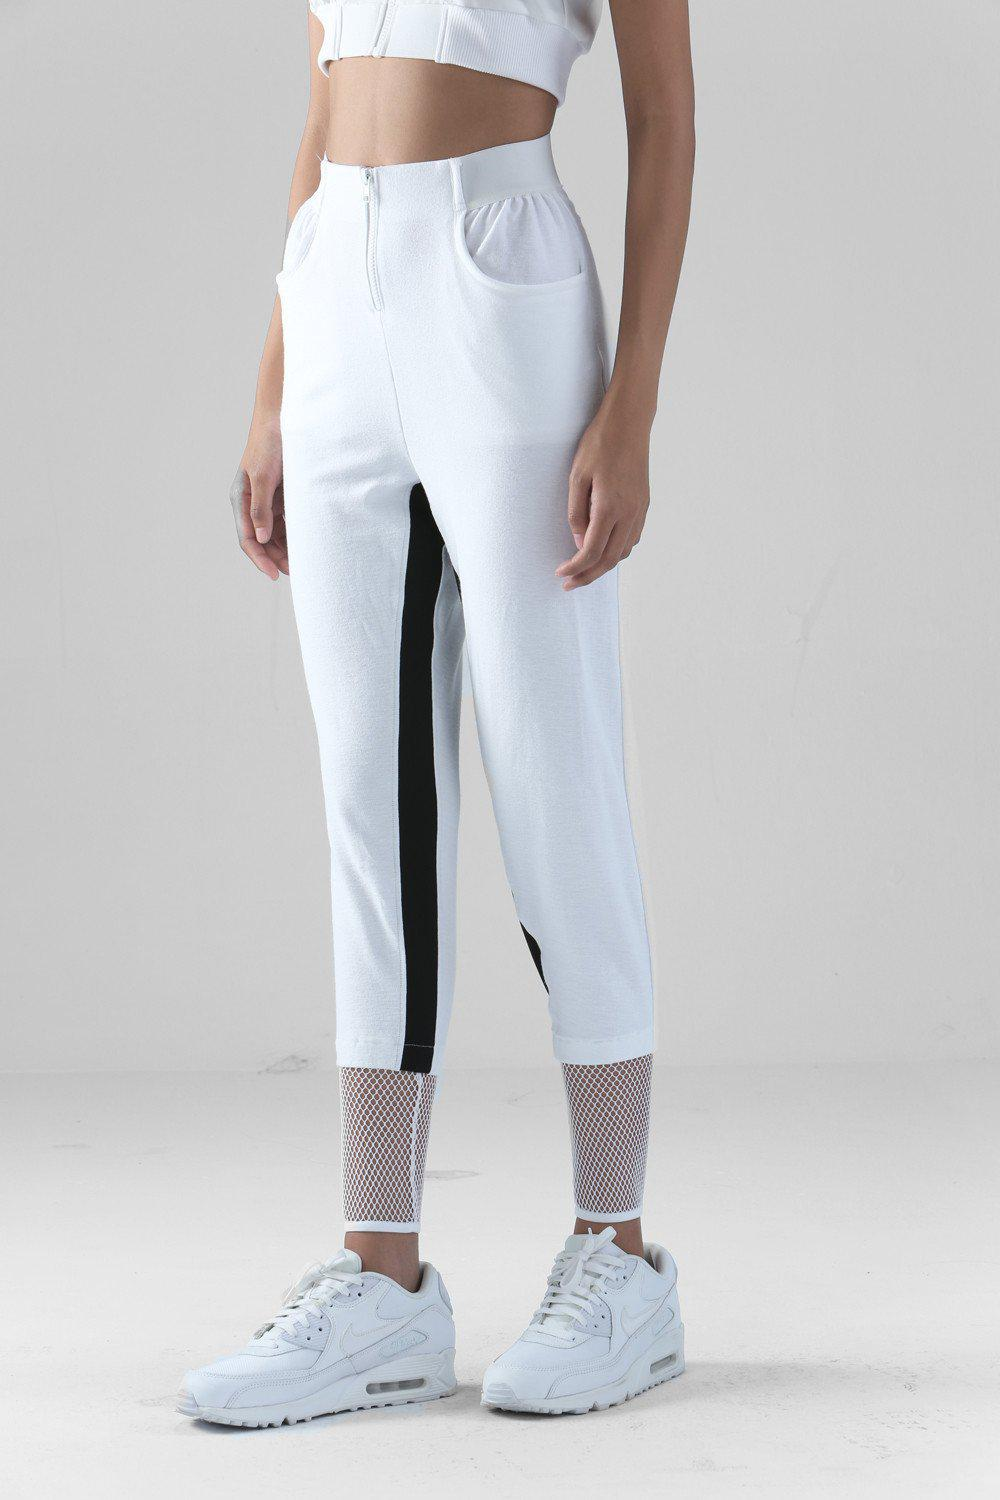 Horizon Pants